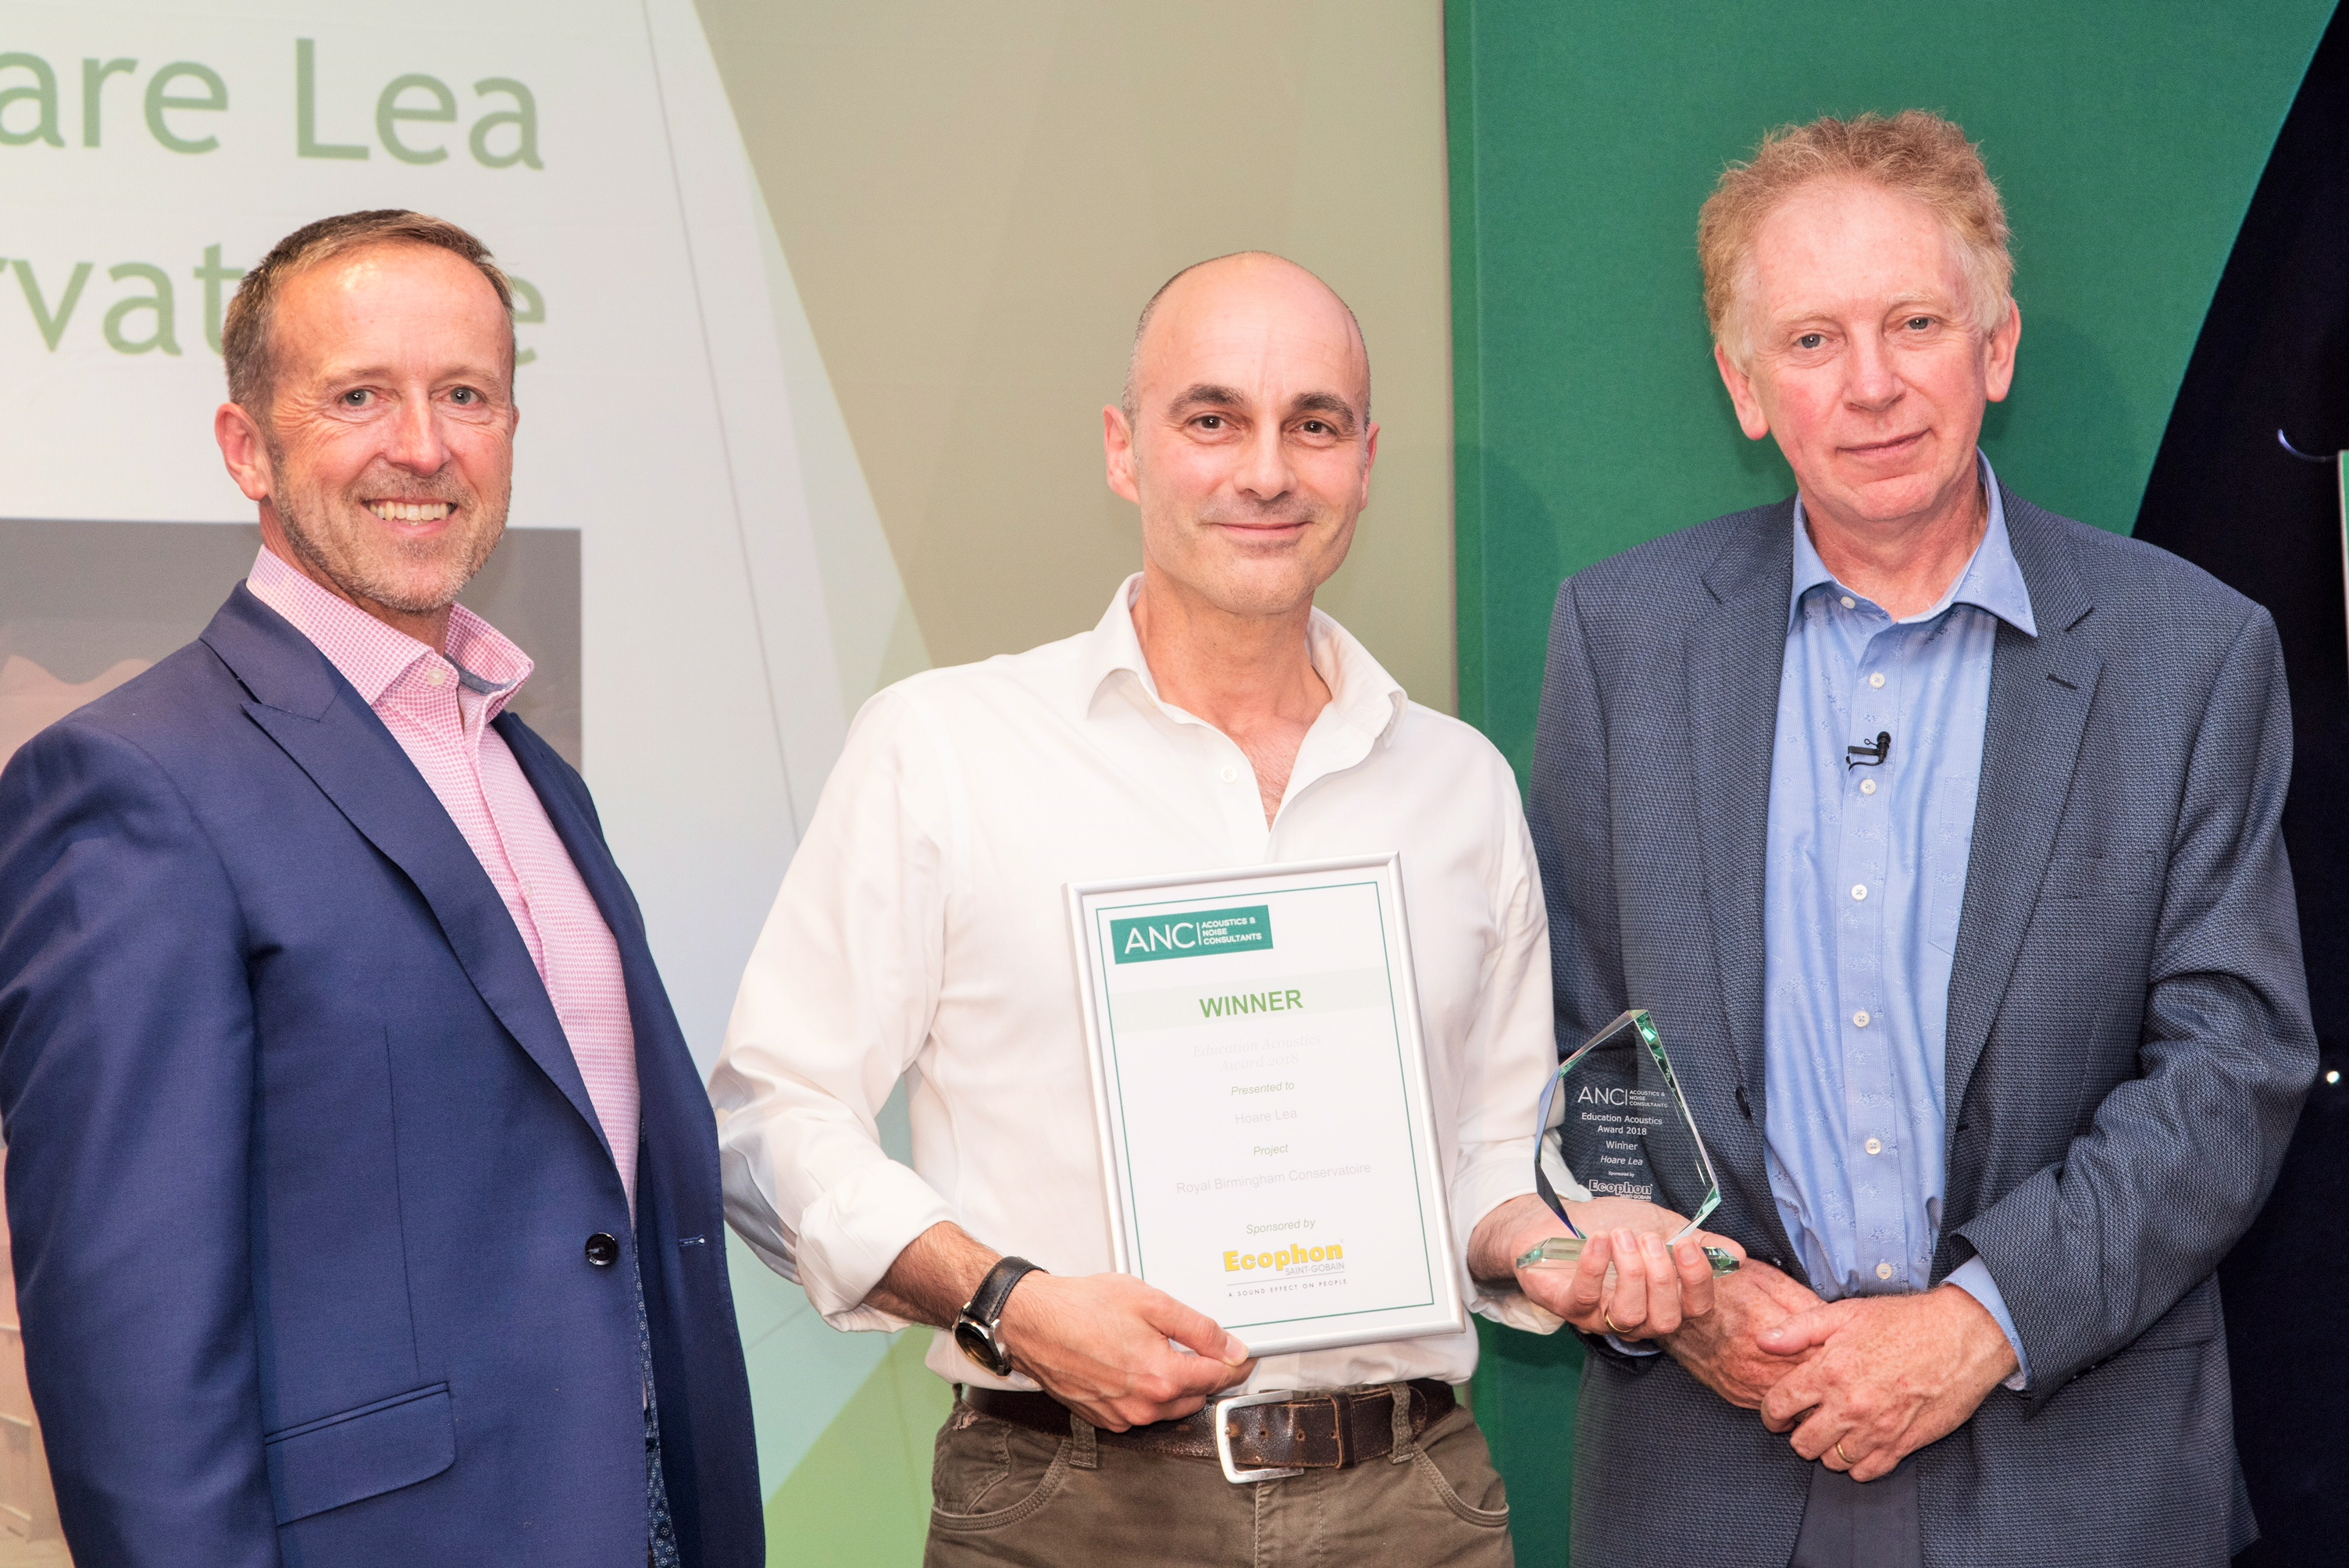 Acoustic excellence recognised at ANC organised awards ...